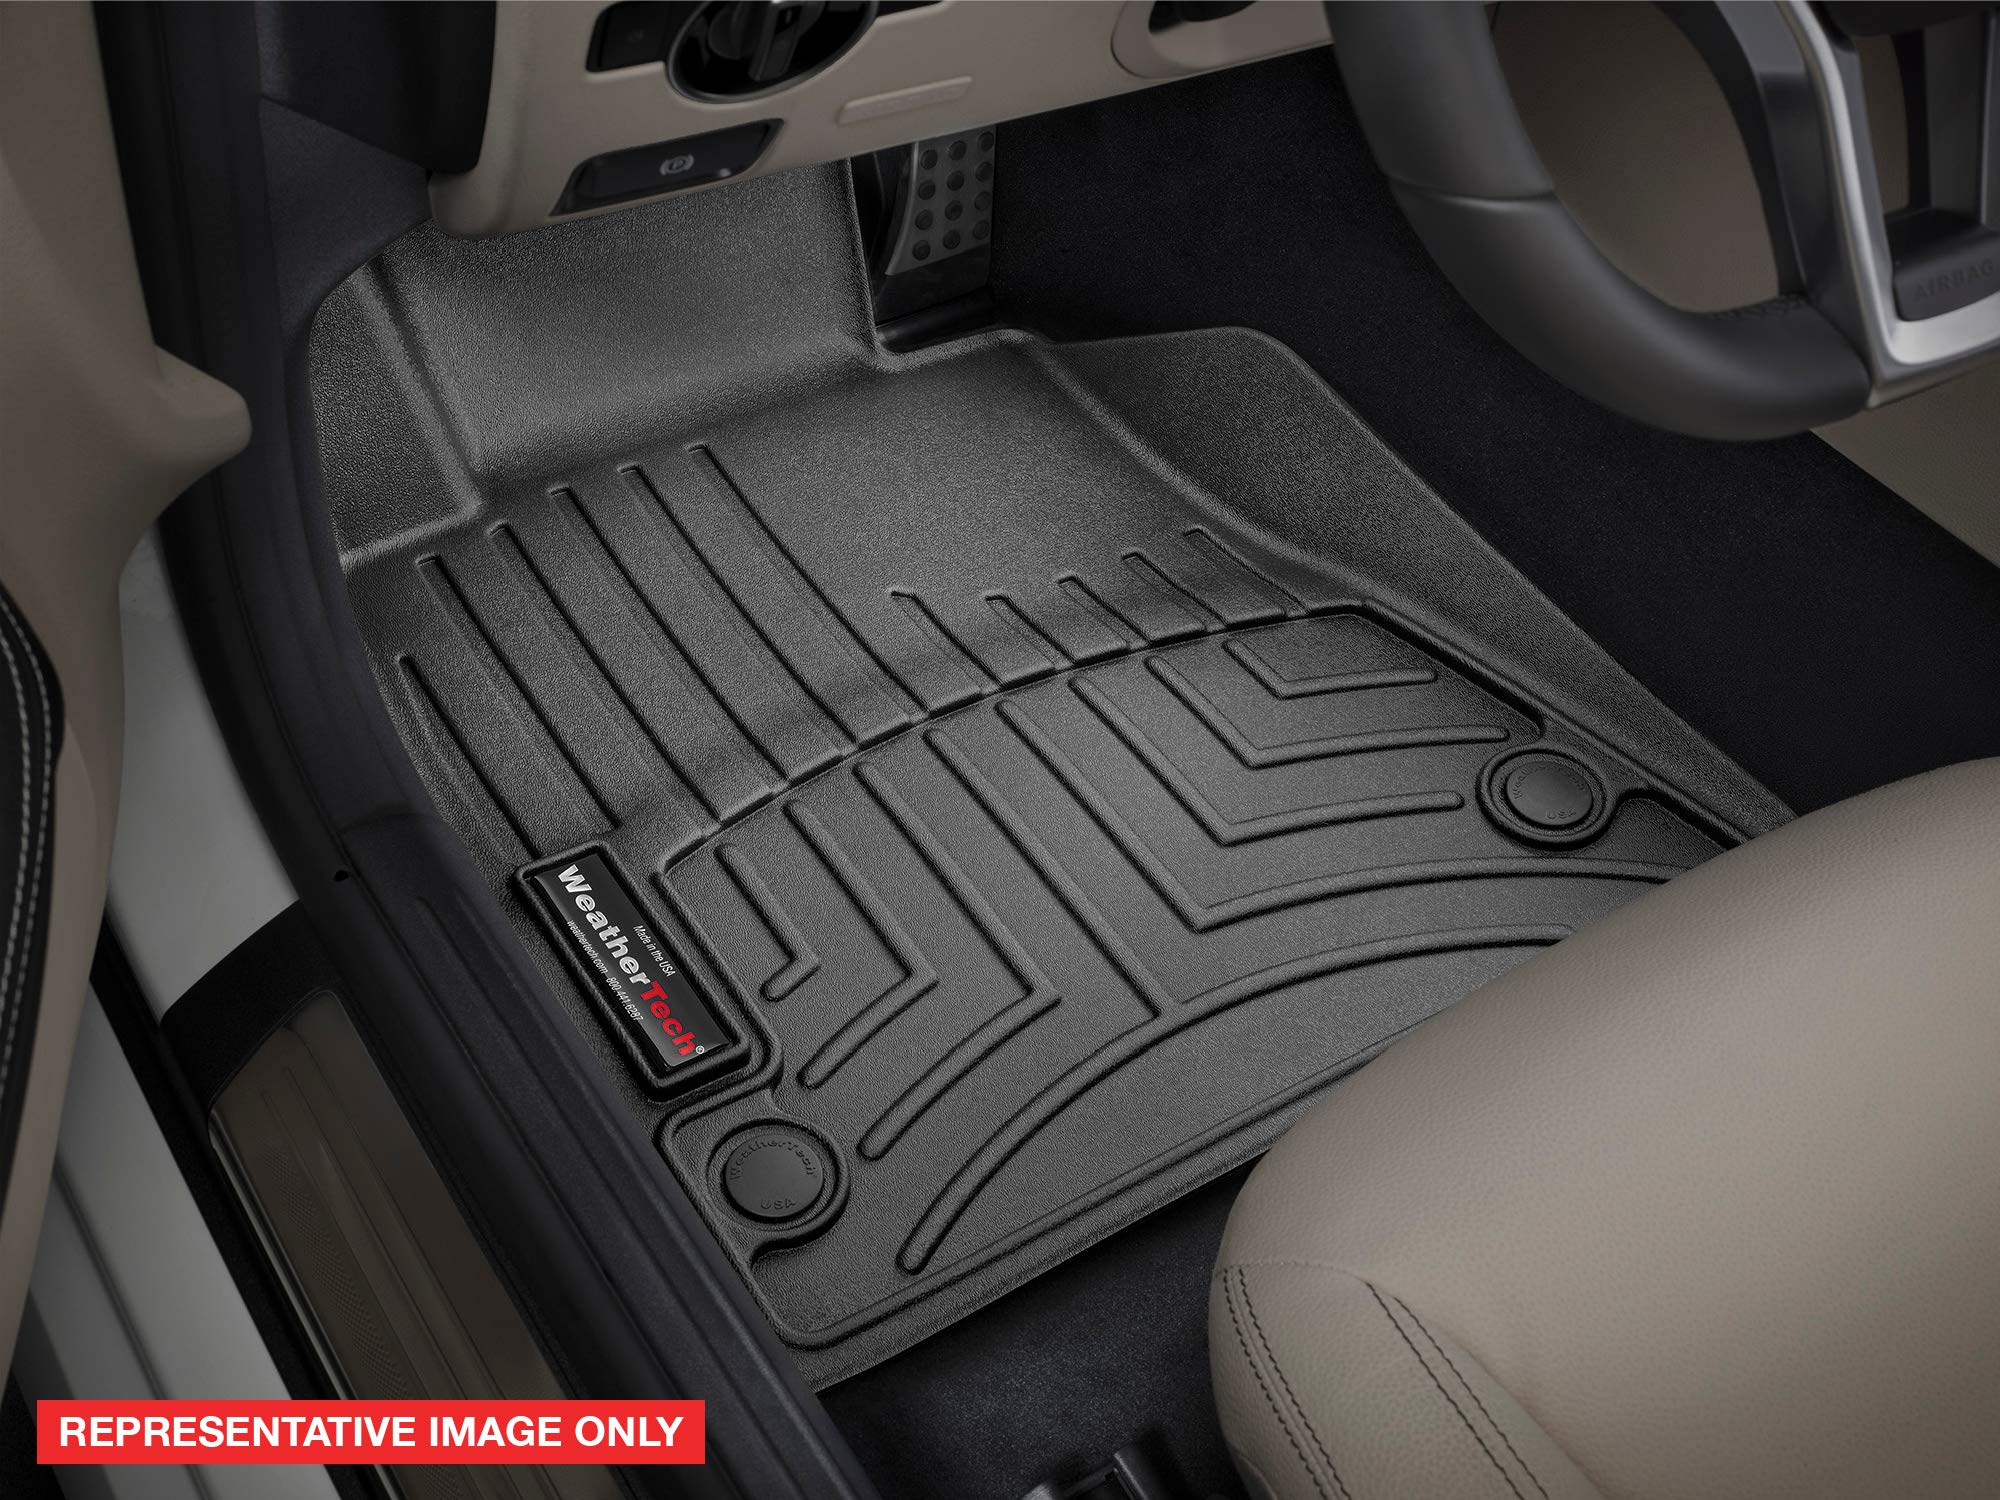 WeatherTech Custom Fit FloorLiner for Honda Pilot/Passport - 1st & 2nd Row (Black)